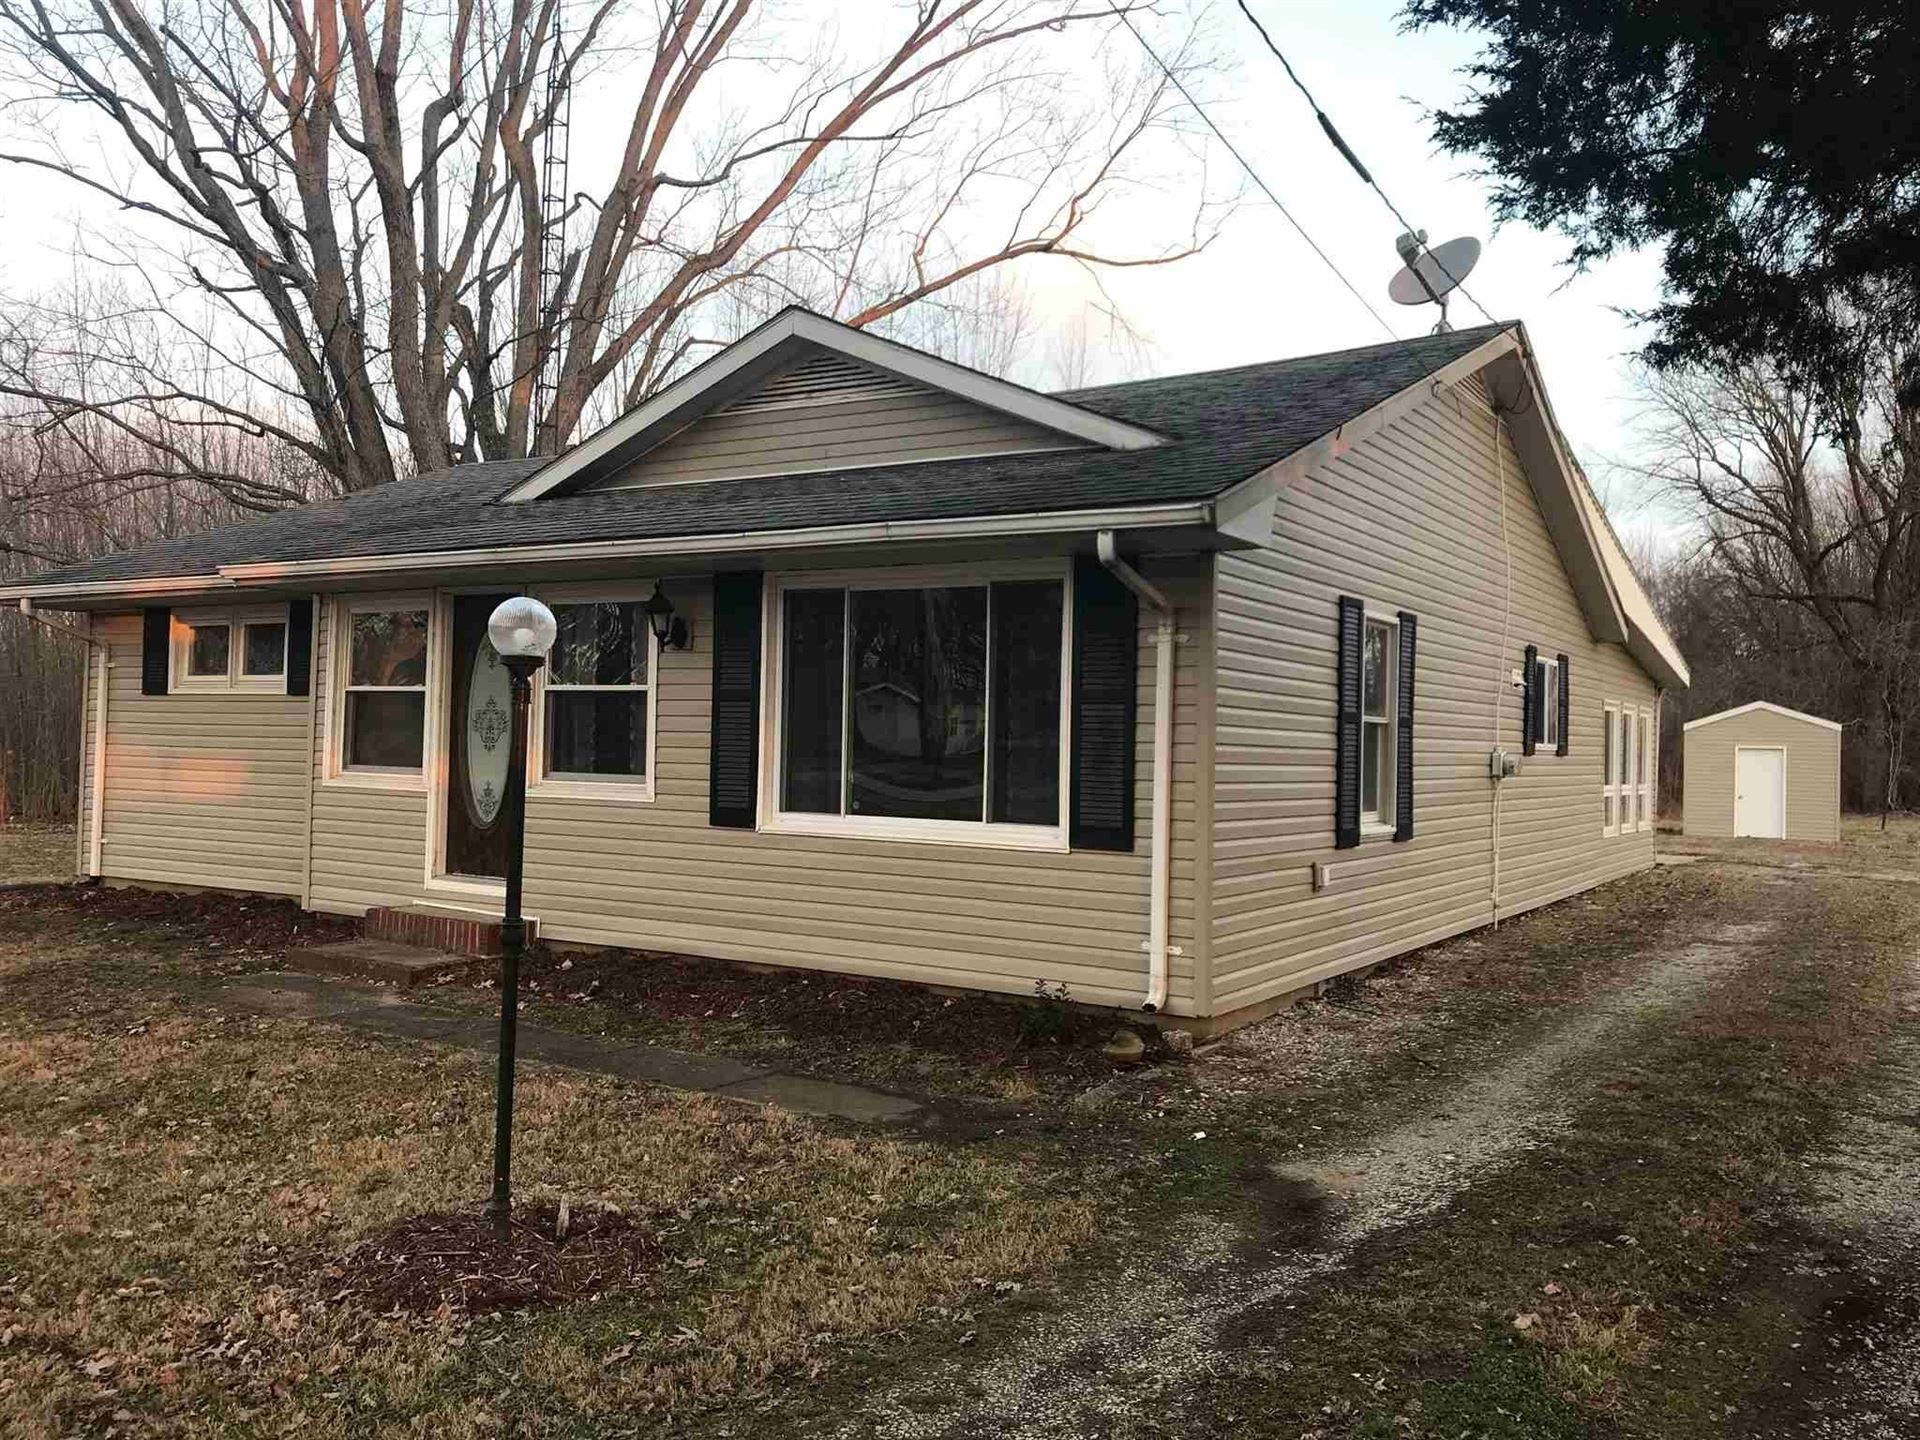 14561 Old US 50 Highway, Lawrenceville, IL 62439 - #: 202001840